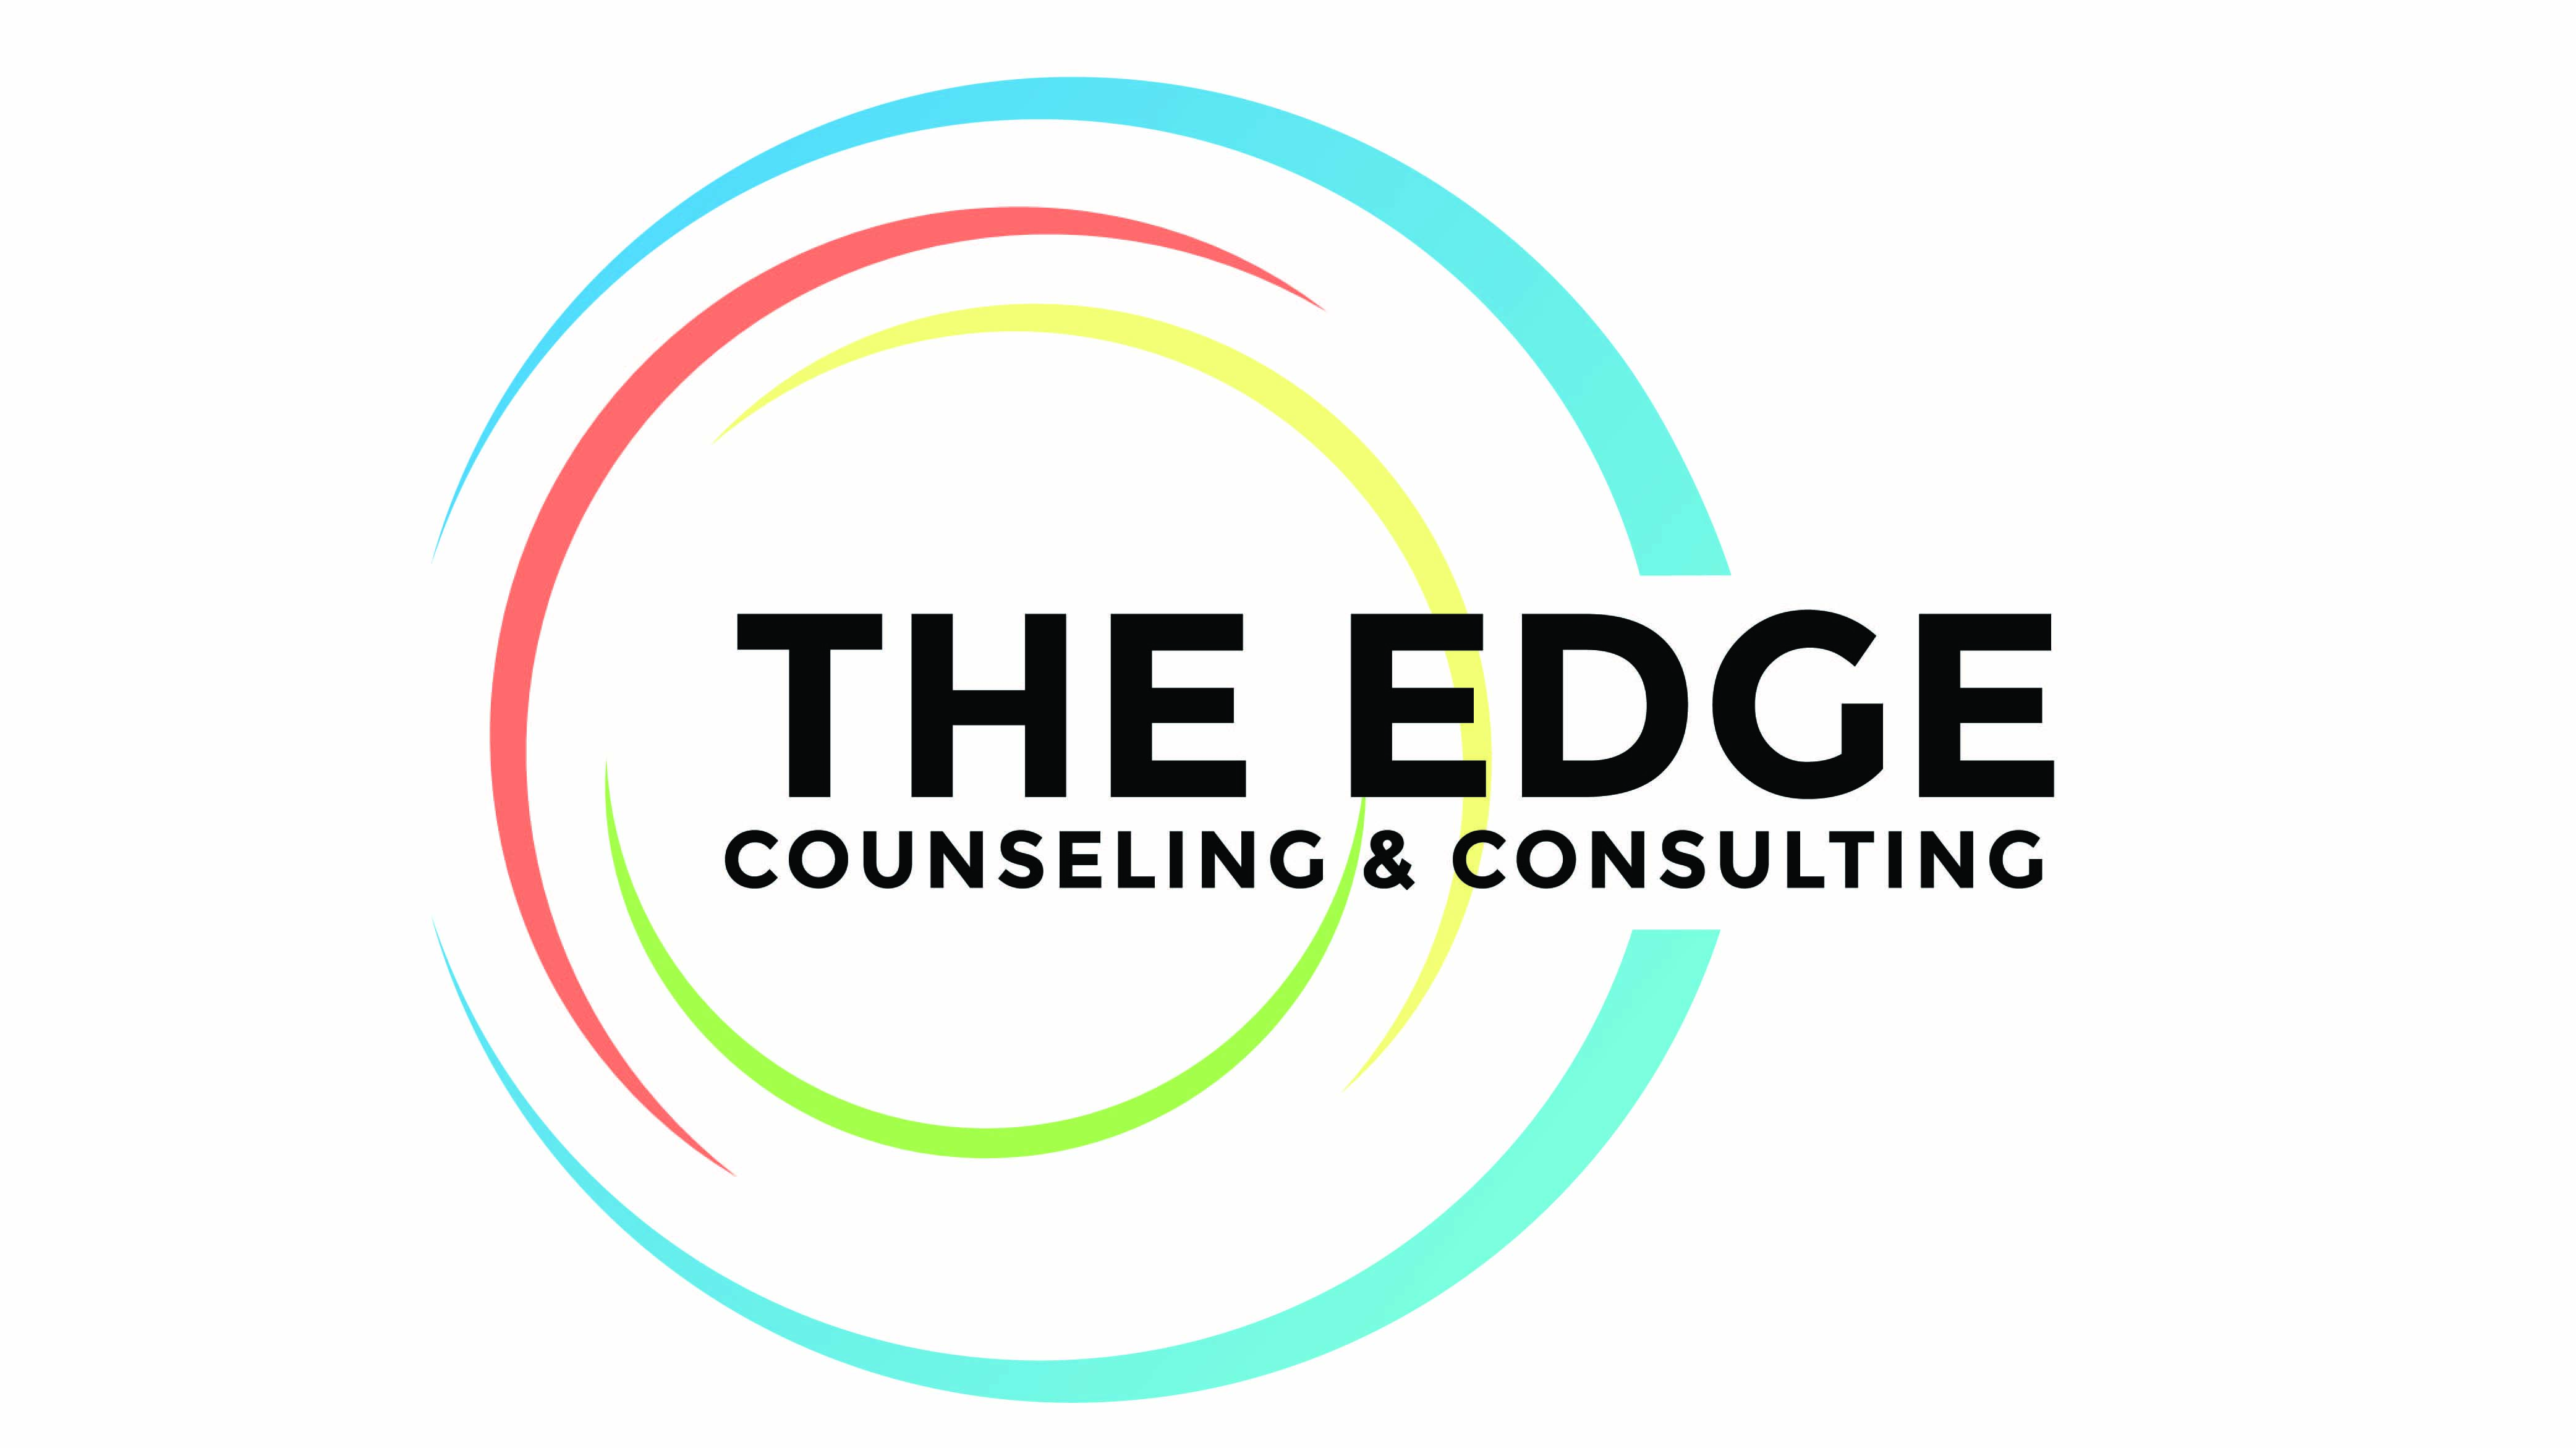 The Edge Counseling & Consulting